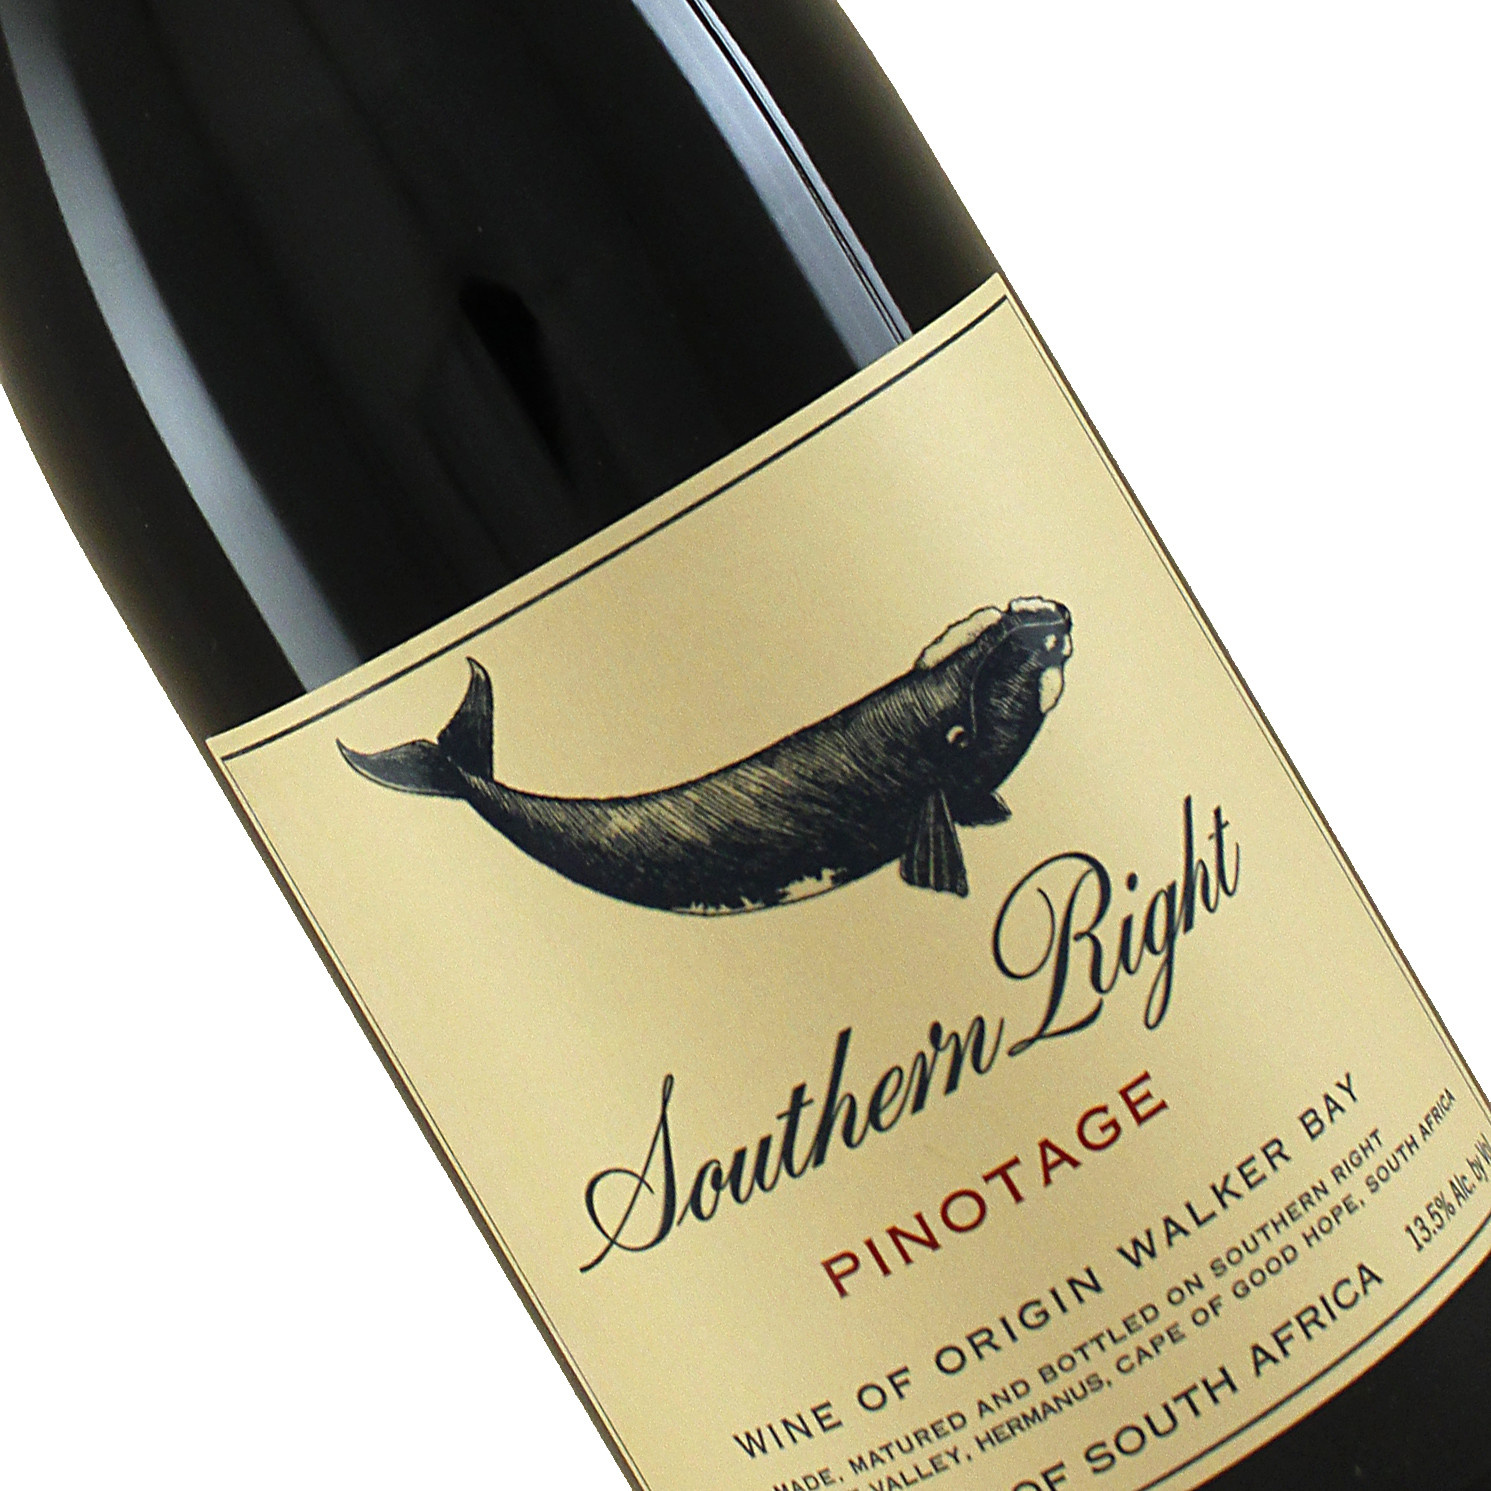 Southern Right 2018 Pinotage, South Africa